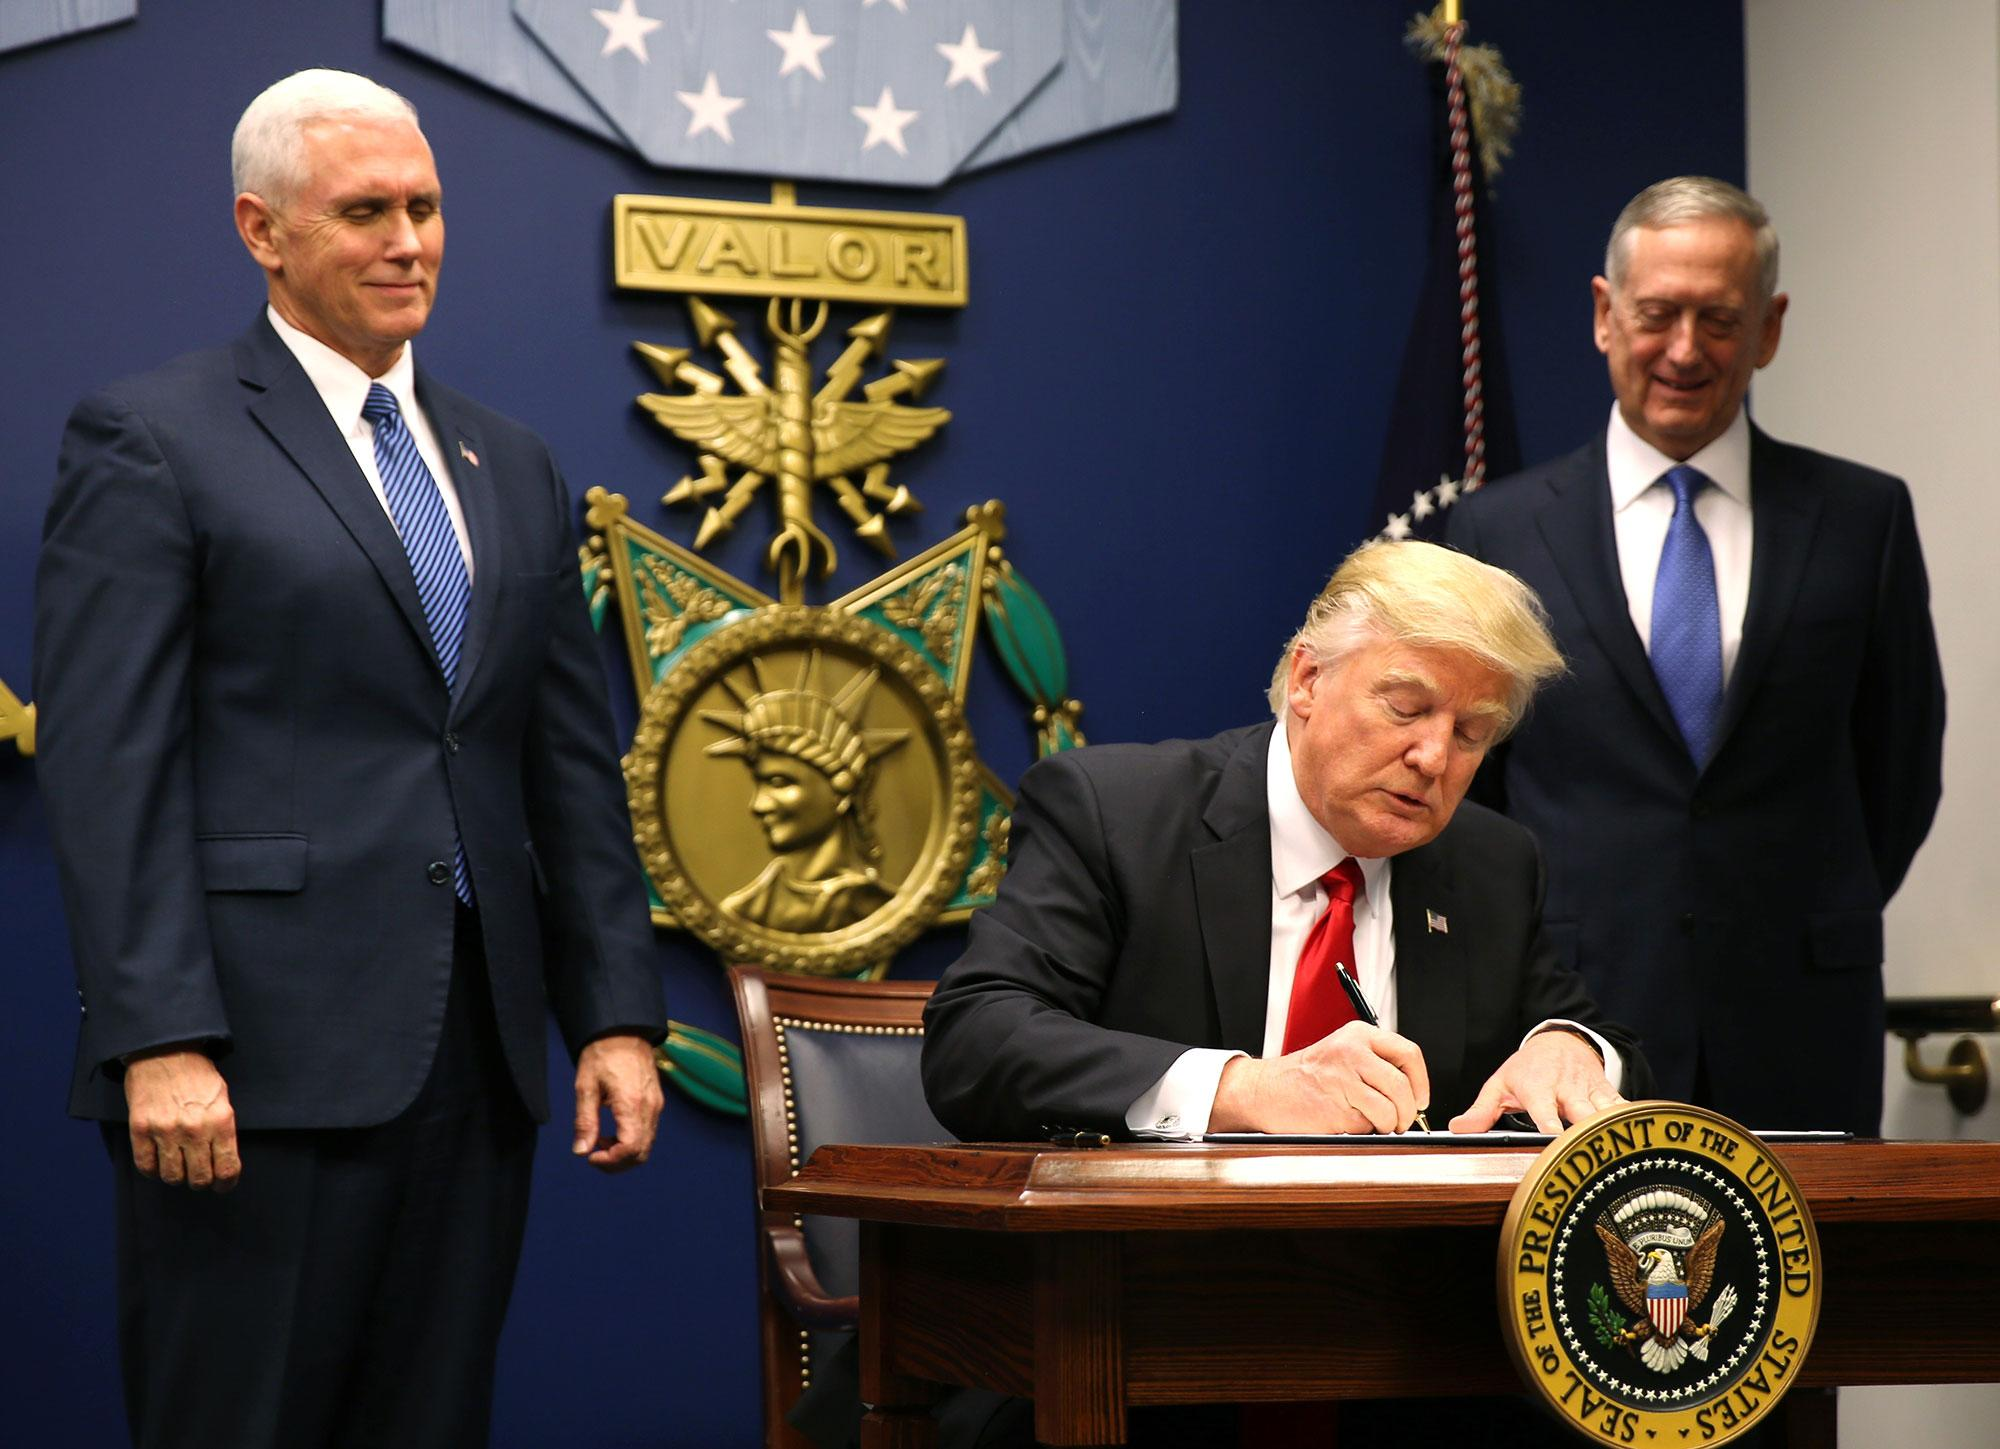 <p>President Donald Trump (C) signs an Executive Order establising extreme vetting of people coming to the United States after attending a swearing-in ceremony for Defense Secretary James Mattis (R) with Vice President Mike Pence at the Pentagon in Washington, U.S., January 27, 2017. The executive order signed by Trump imposes a four-month travel ban on refugees entering the United States and a 90-day hold on travelers from Syria, Iran and five other Muslim-majority countries. (Carlos Barria/Reuters) </p>